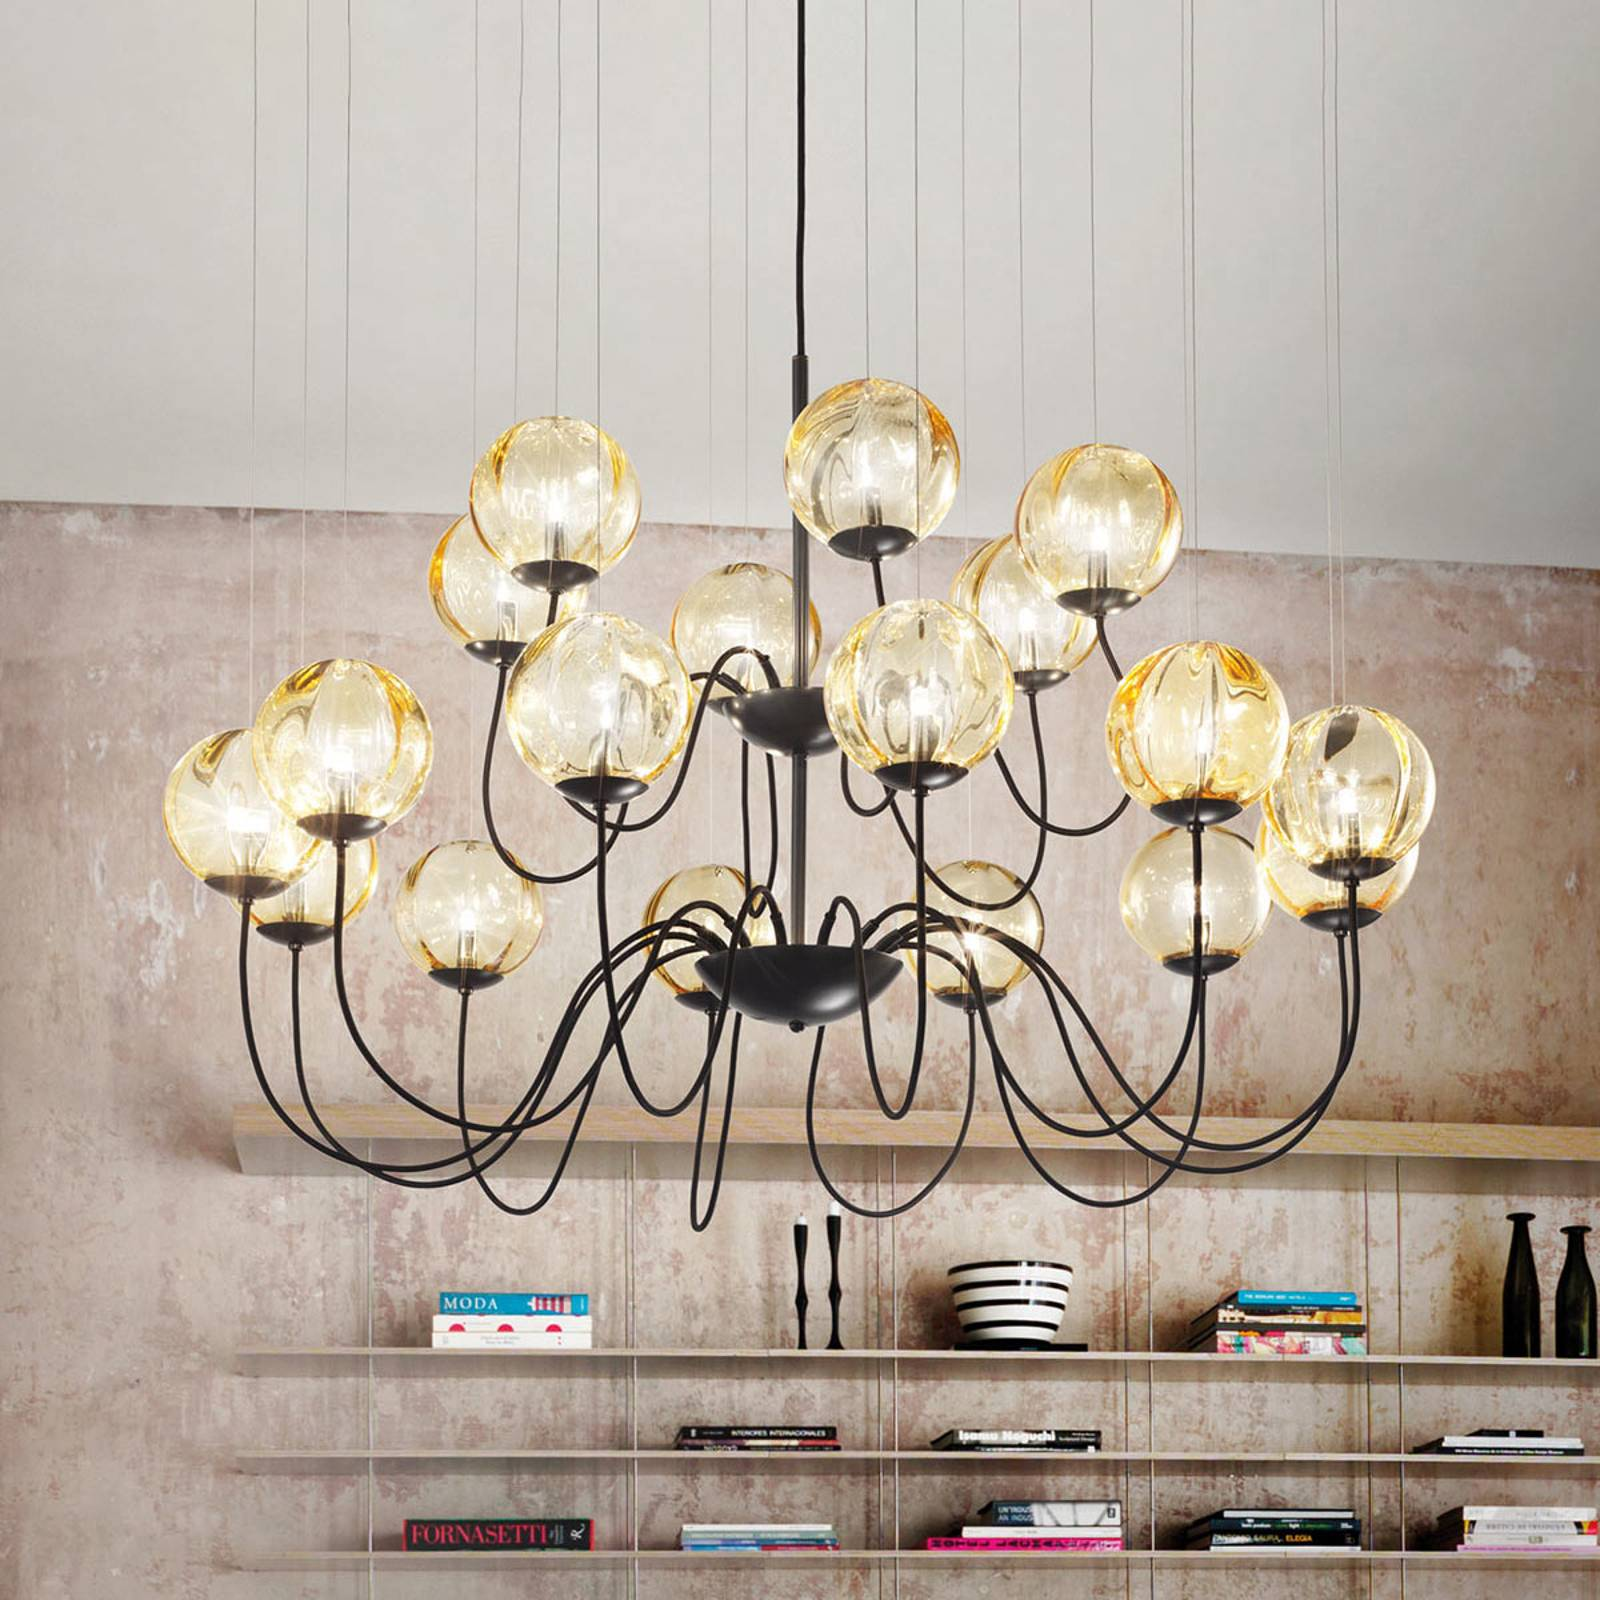 Puppet designer chandelier, Murano glass from Vistosi